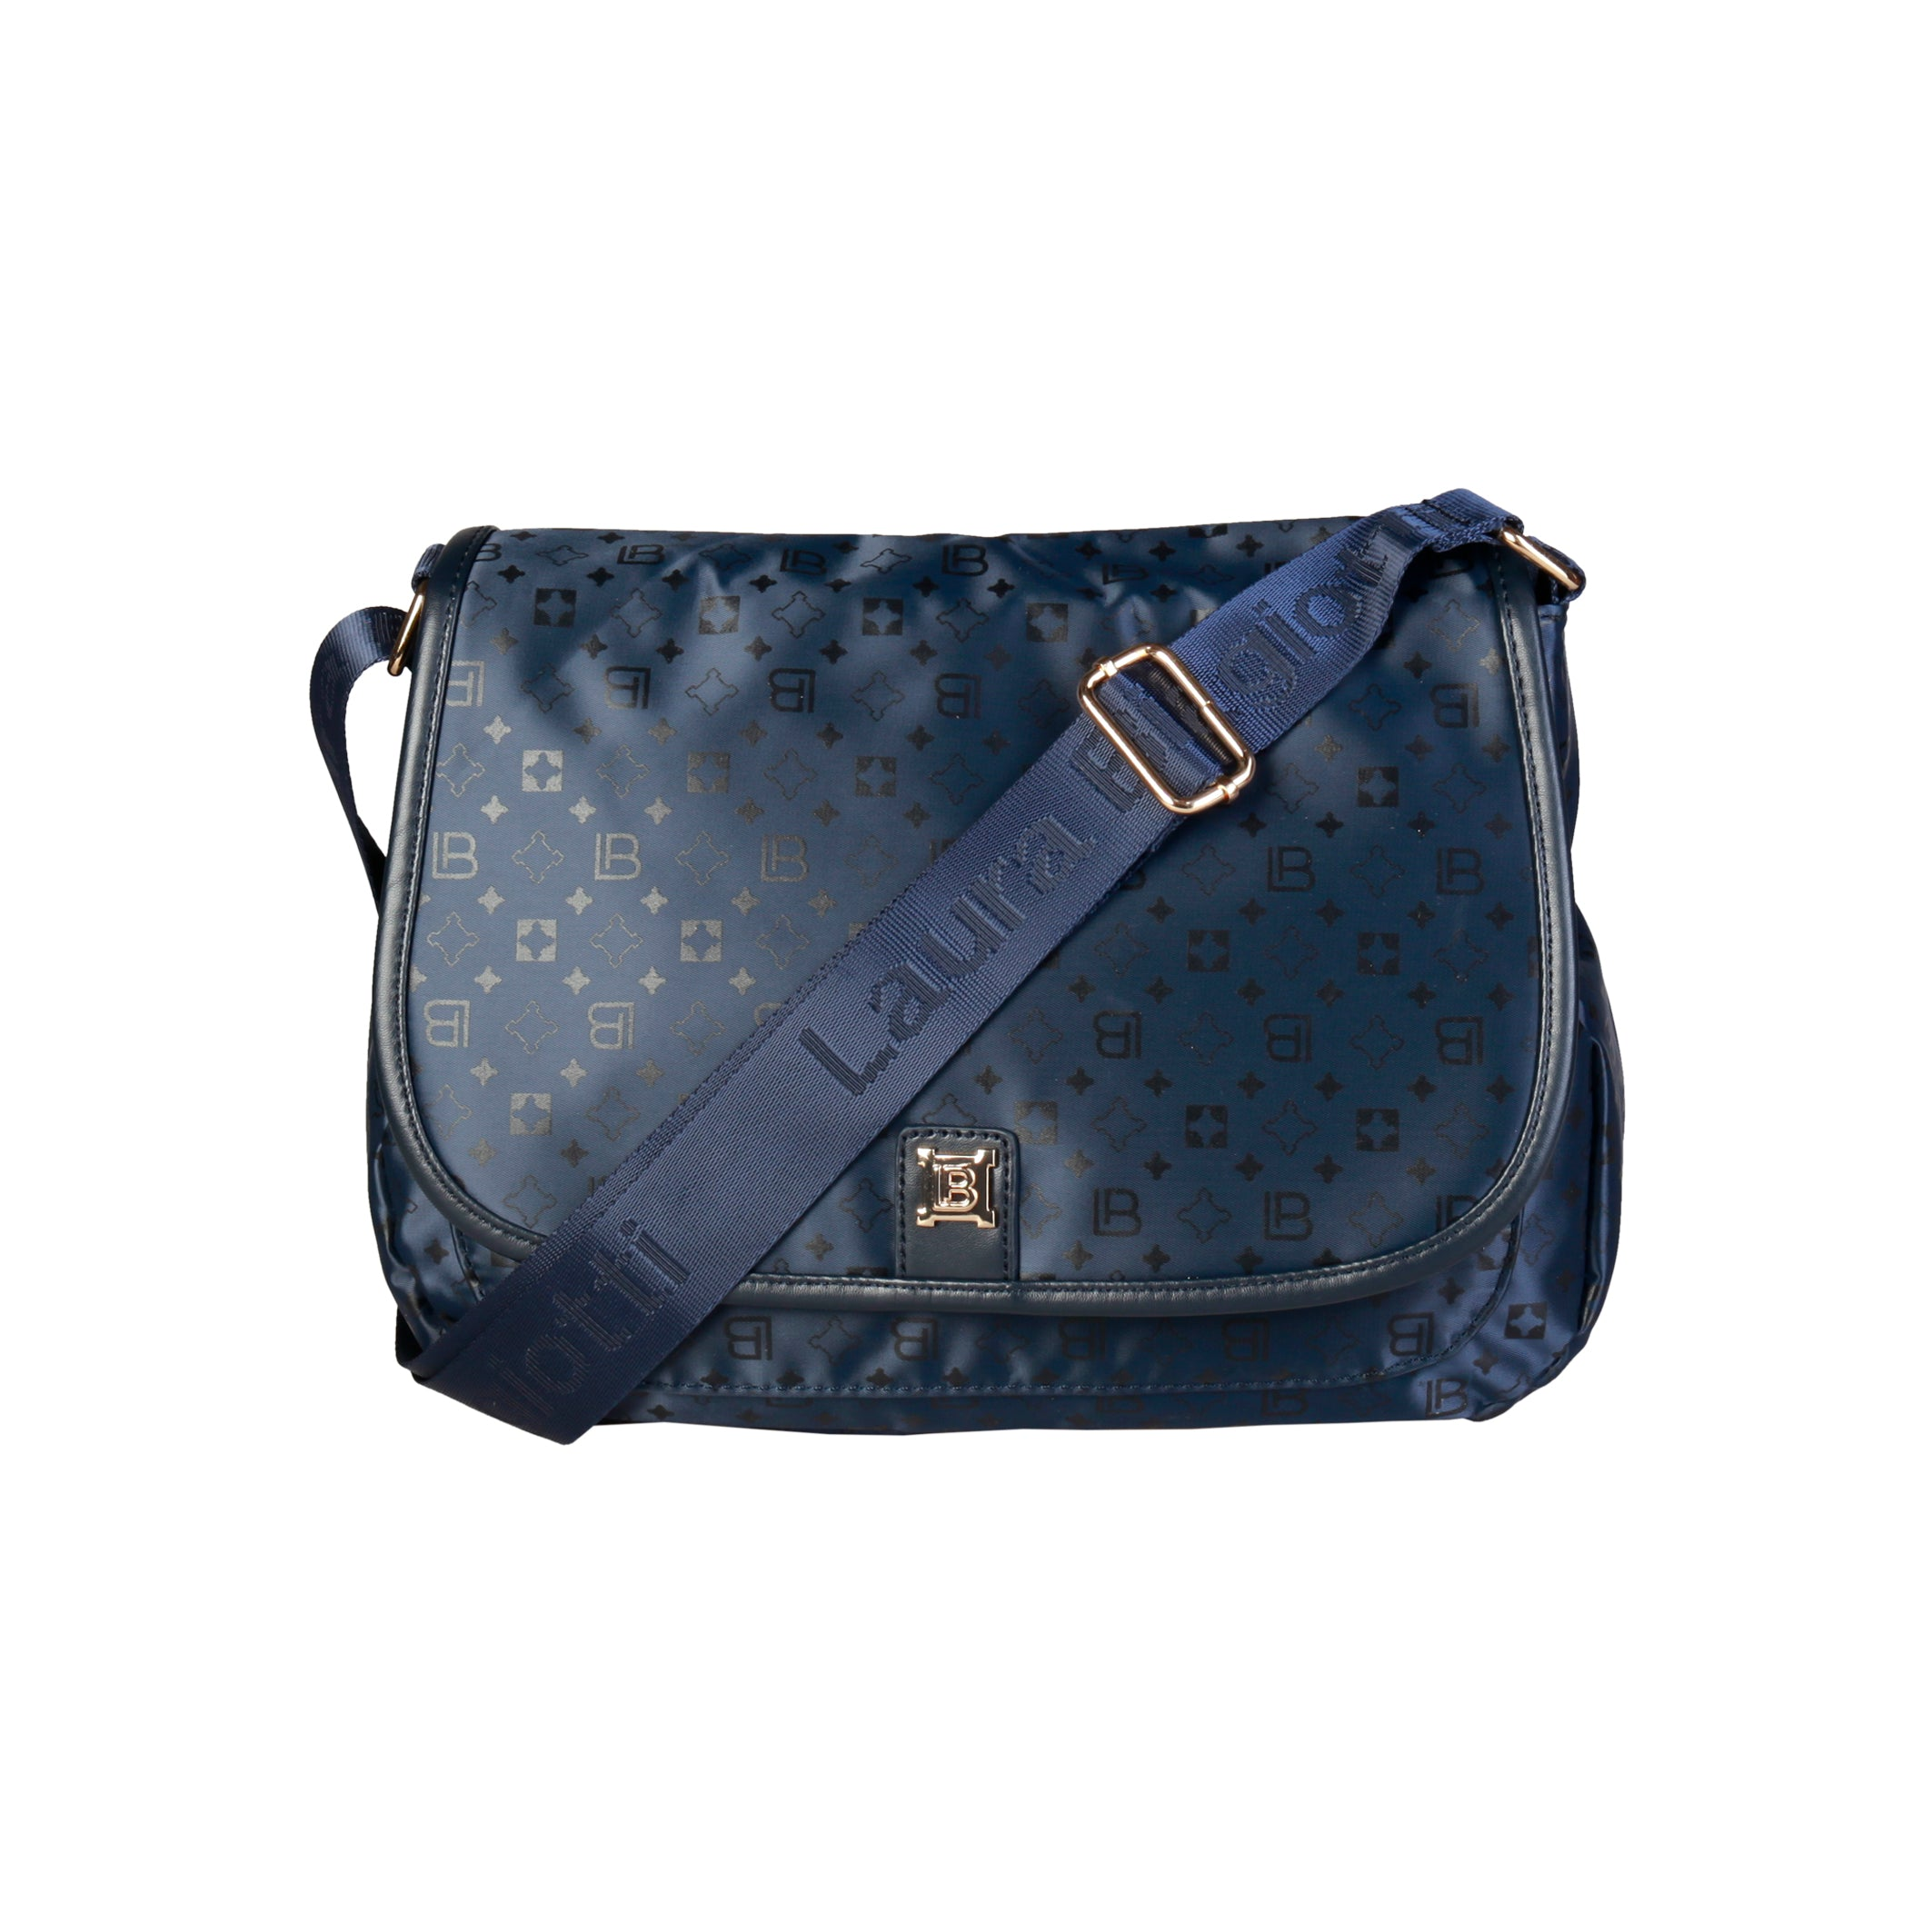 Laura Biagiotti Womens Crossbody Bag - LB17W101-25